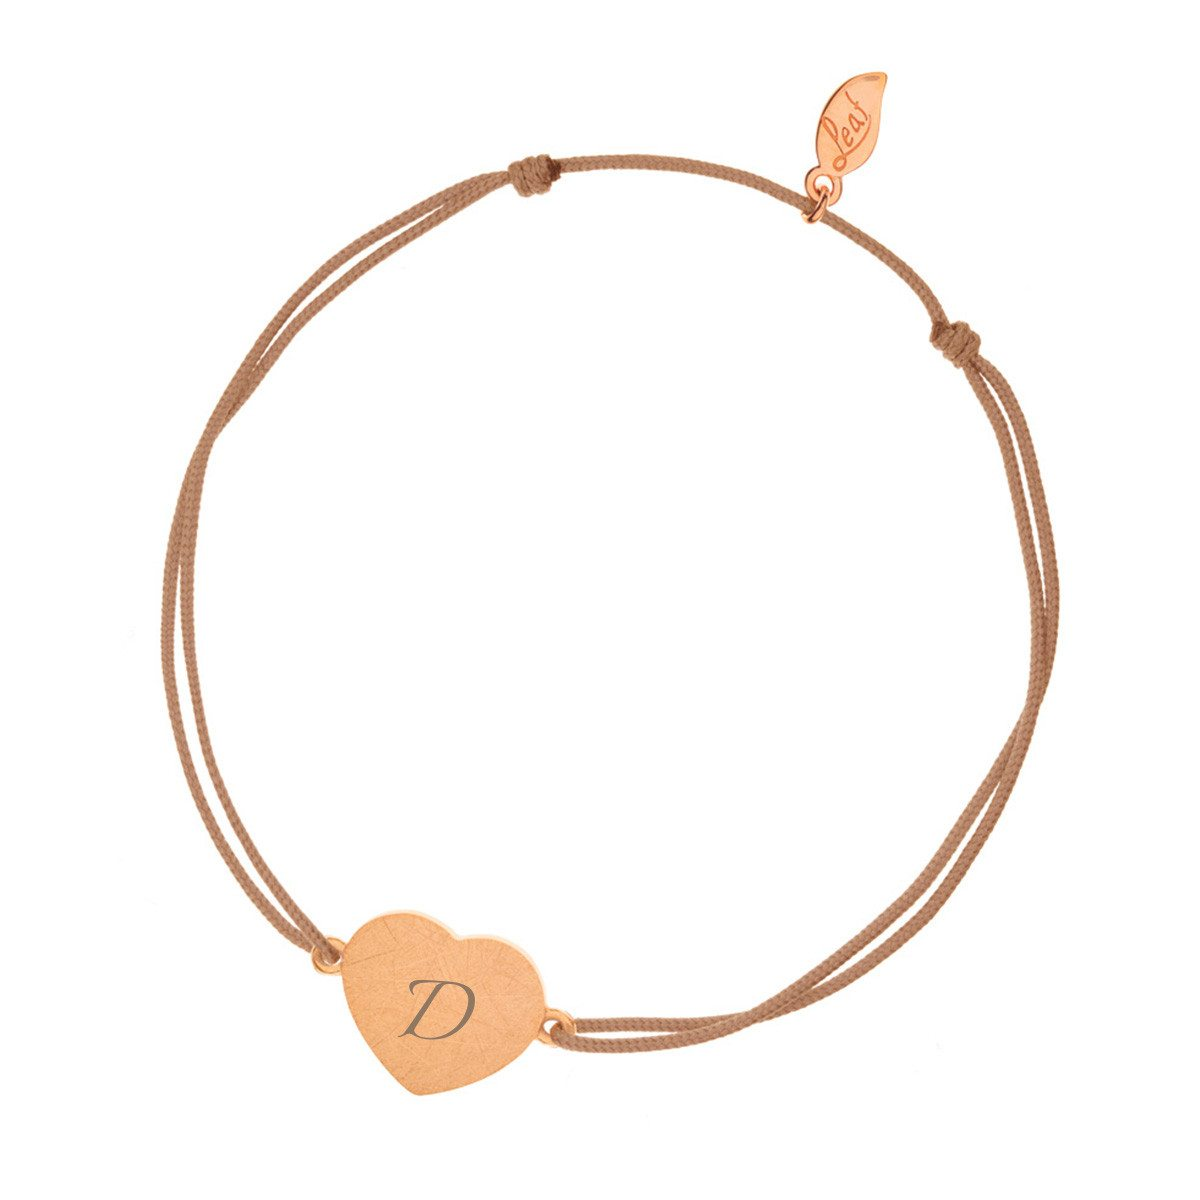 PERSONALIZED ROSEGOLDEN HEART-DISC BRACELET WITH INITIALS